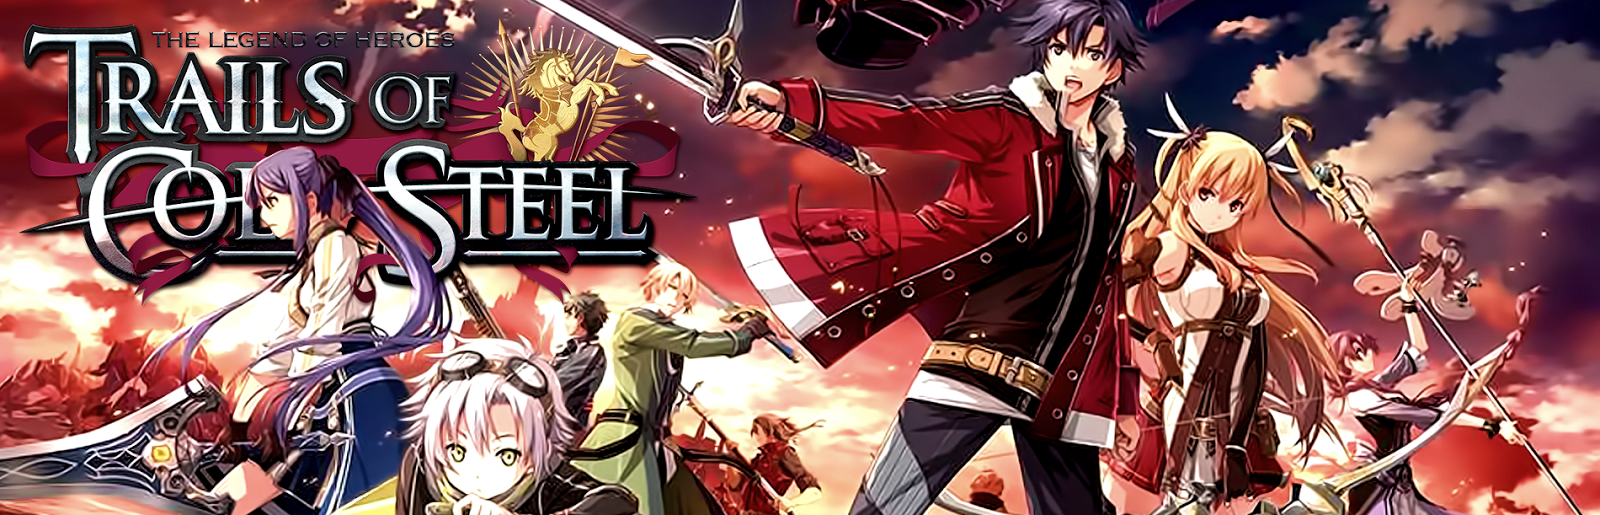 Review: The Legend of Heroes – Trails of Cold Steel (PS3)